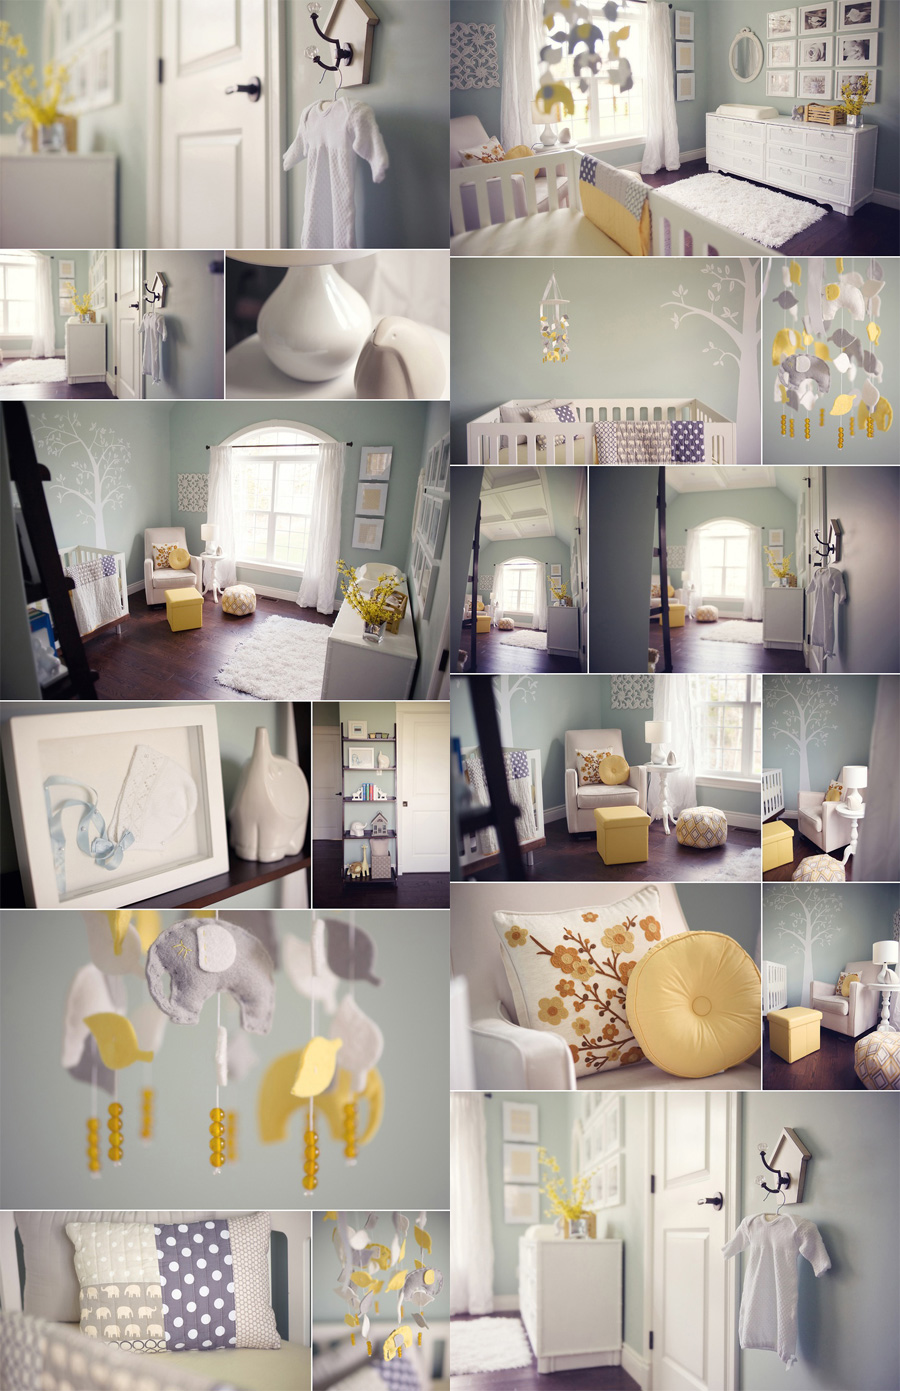 Inspirations id es d co pour une chambre b b nature et for Des idees de decoration maison